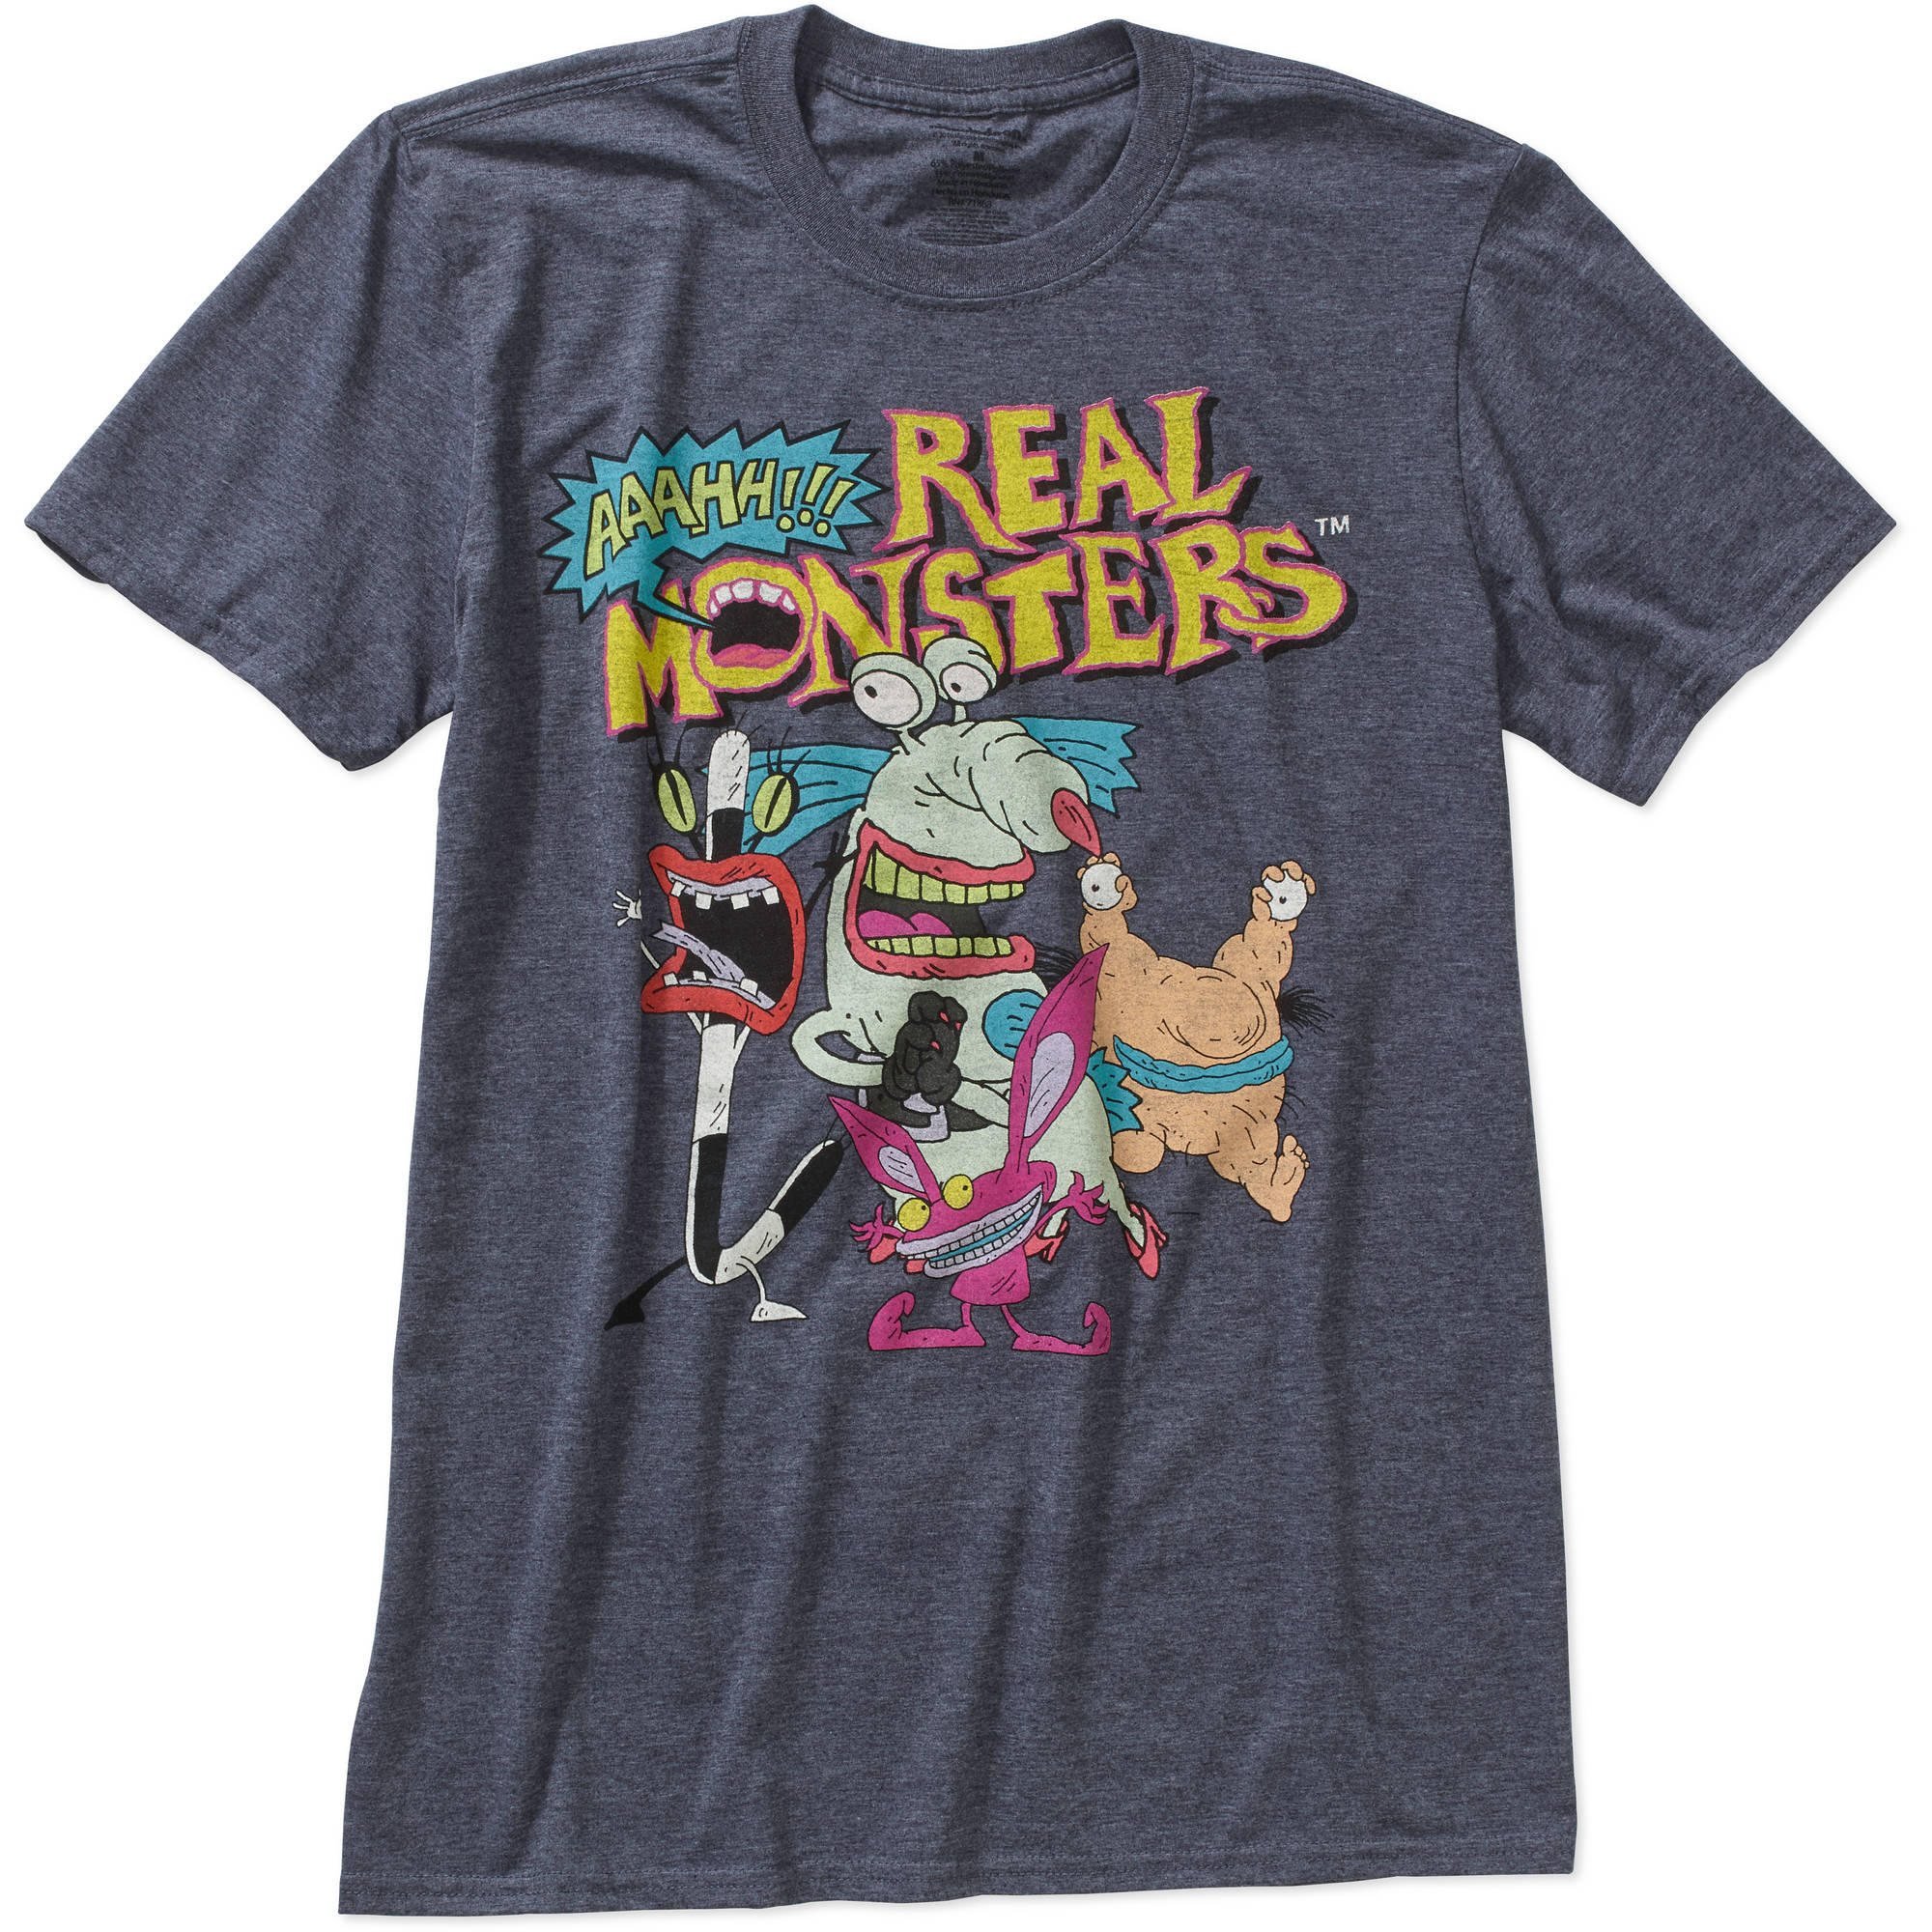 Aaahh!! Real Monsters Big Men's Graphic Tee, 2XL